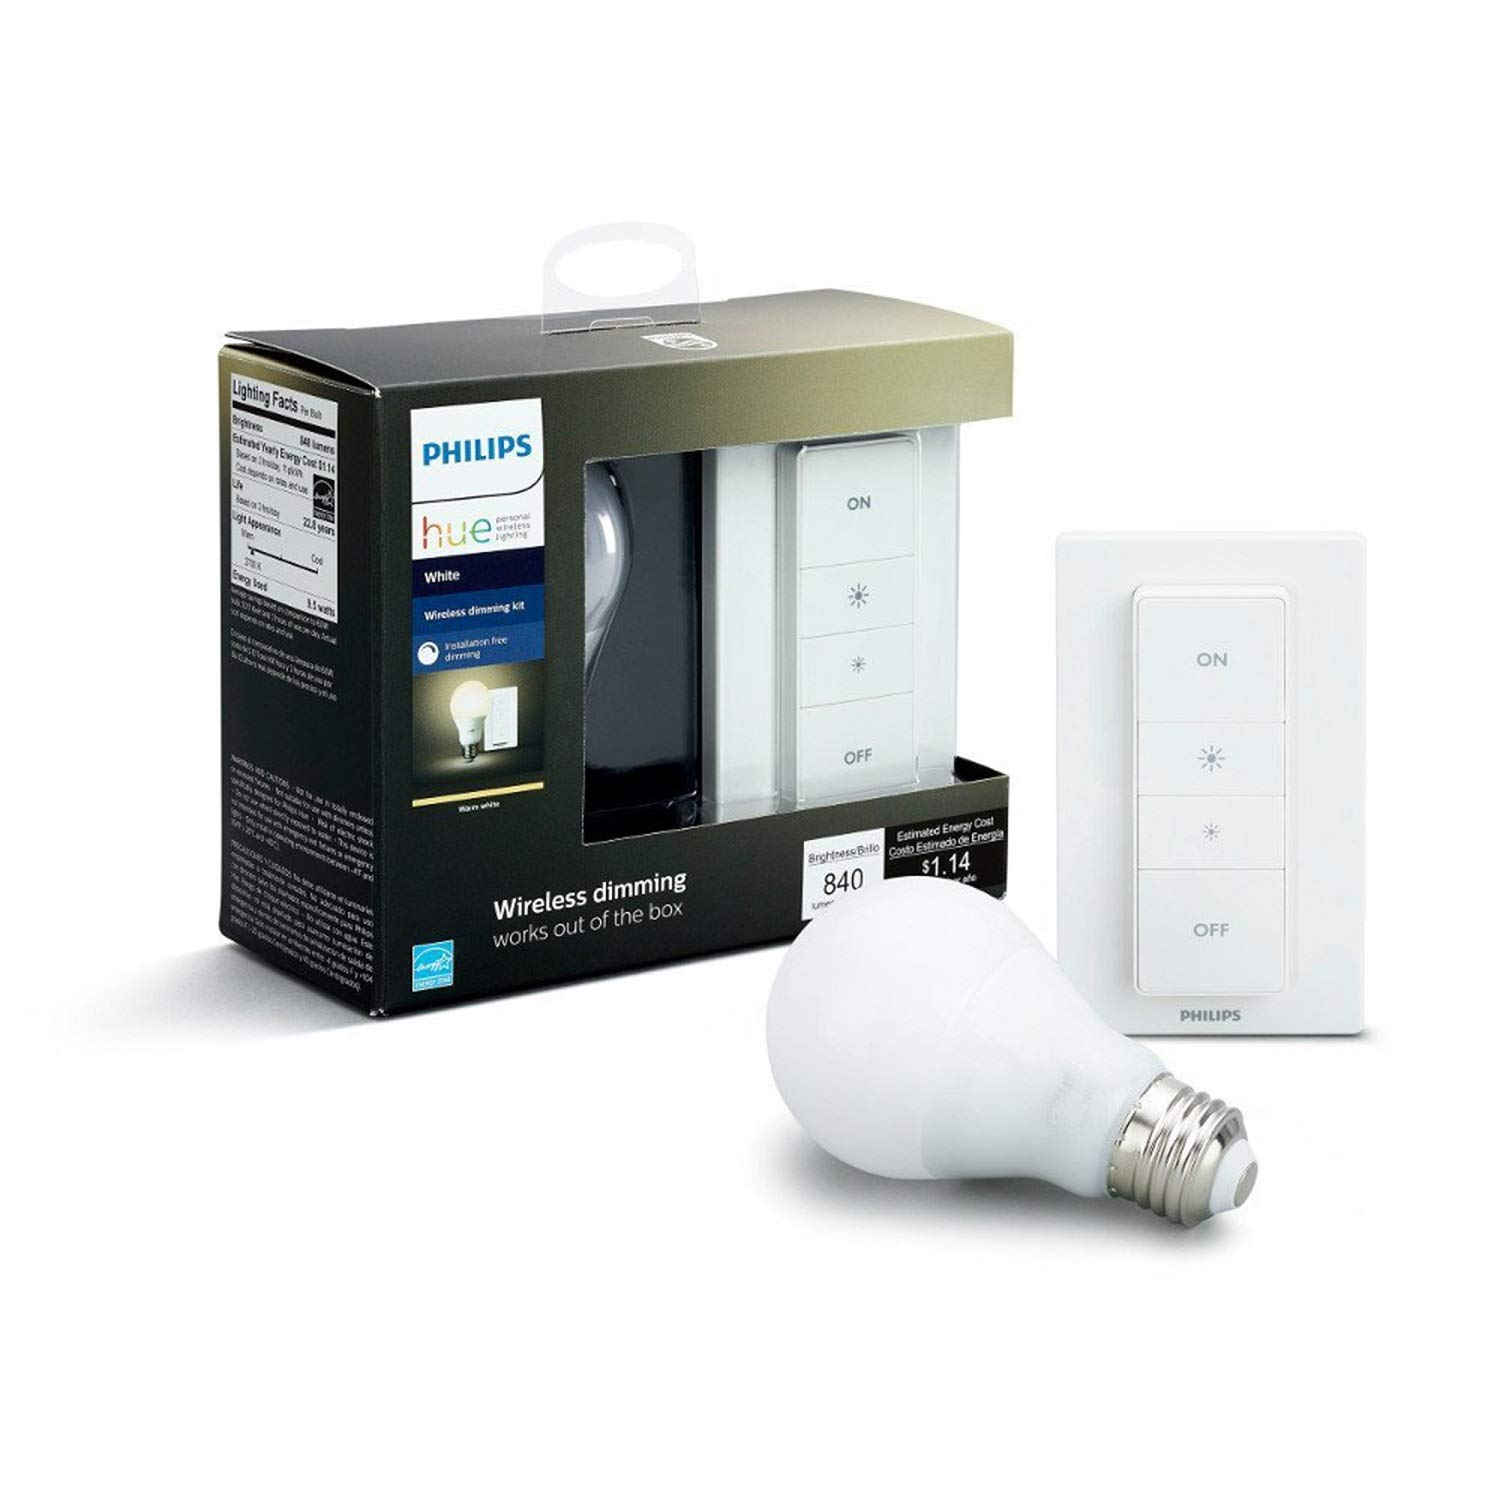 Philips Hue Smart Wireless Dimming Kit (Installation-Free, Exclusive for  Philips Hue Lights, Compatible with Amazon Alexa, Apple HomeKit and Google